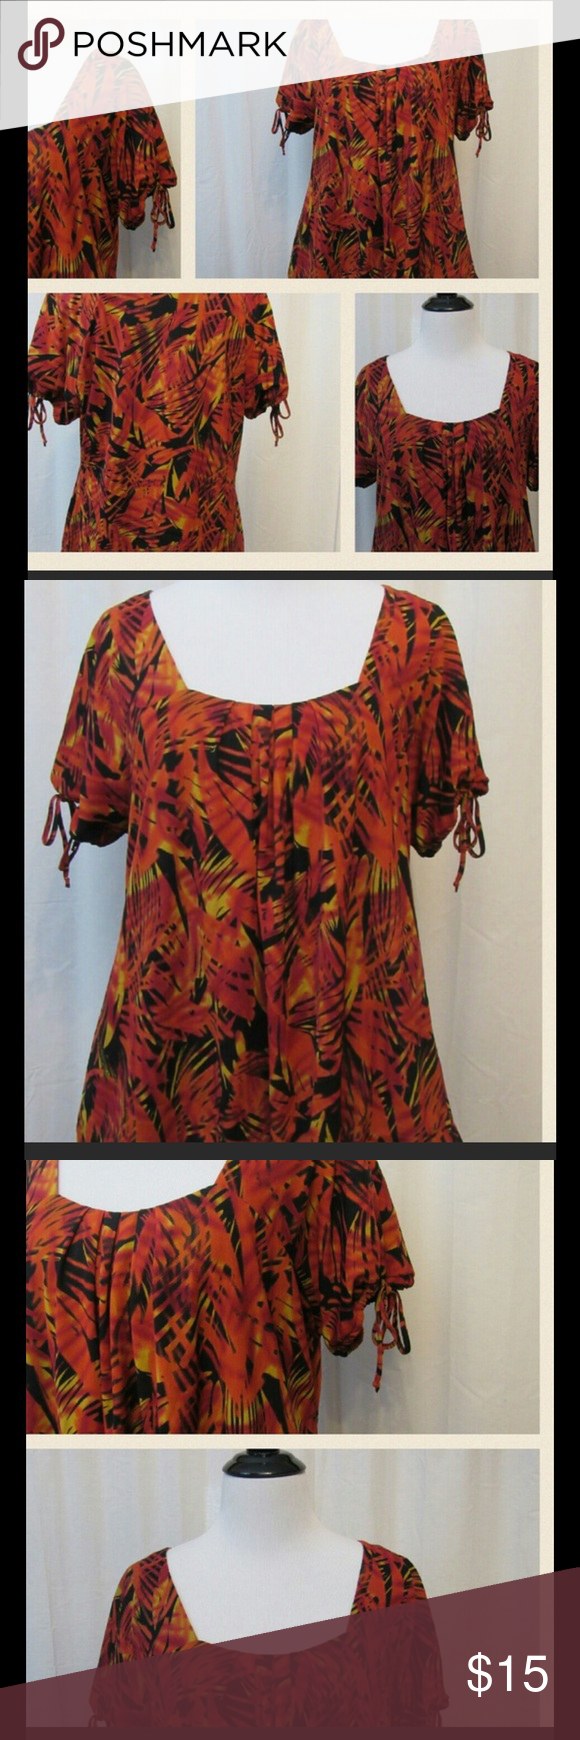 """Worthington Orange Black Short Sleeve Top L Great condition. Short sleeve. Super cute and comfy. Scoop Neck. Lined.   All clothes are in excellent used condition. No stains or holes.  Content: 100% nylon lining: 100% polyester  Bust: 40"""" Length: 23""""  Posh11 Worthington Tops Blouses"""